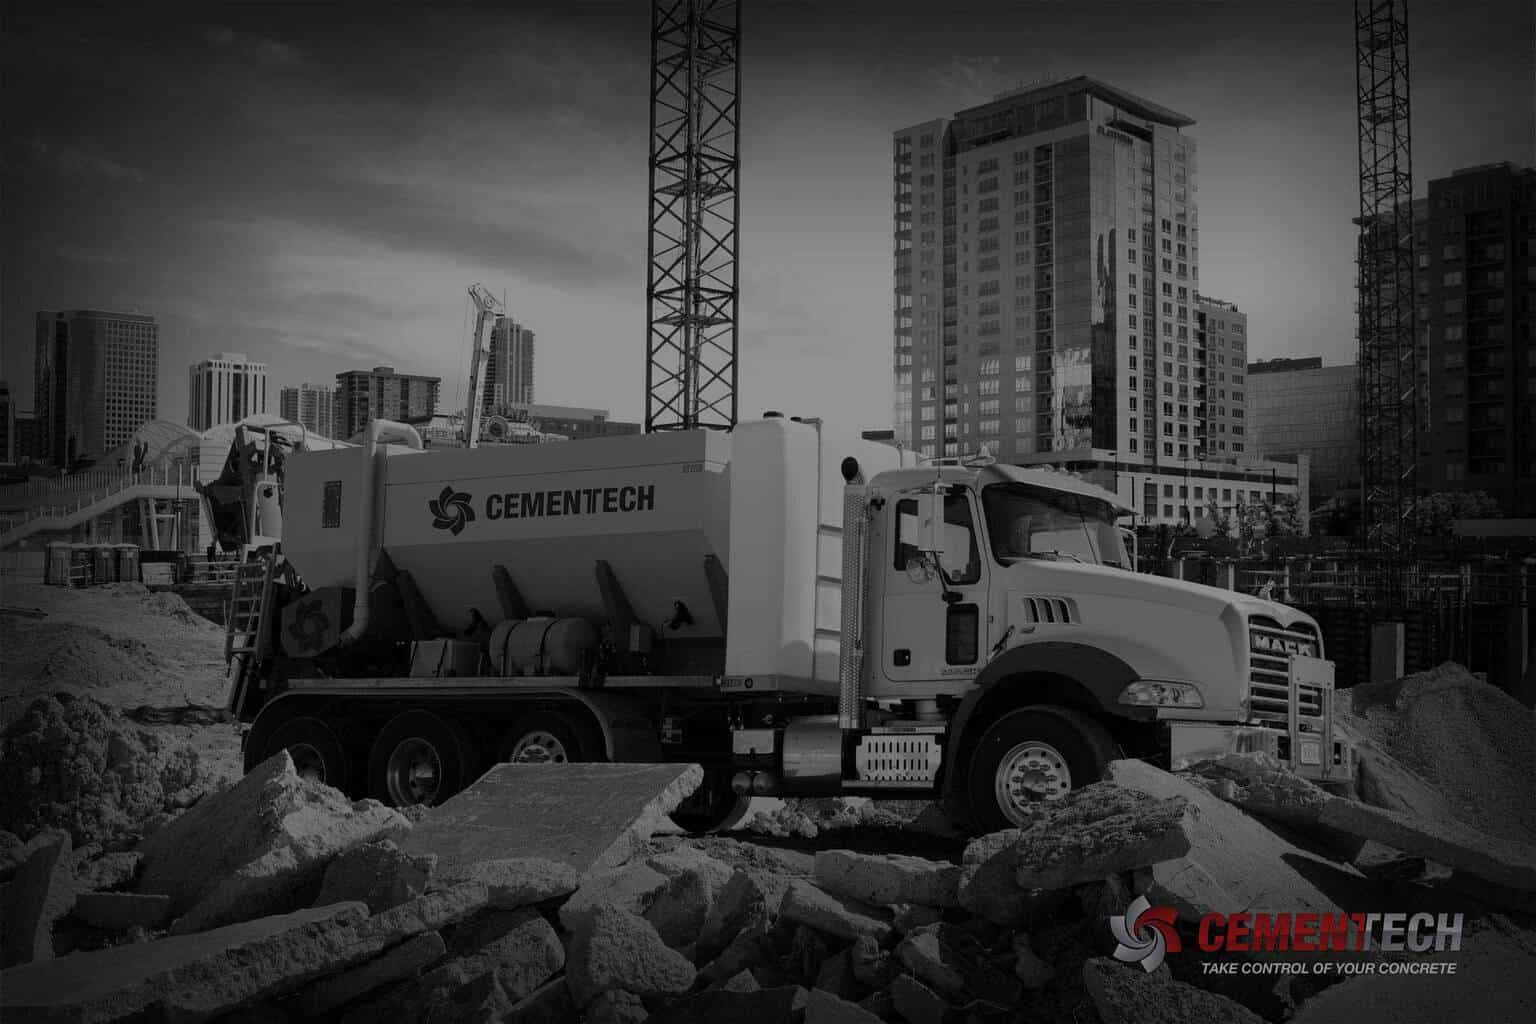 Cementech Truck at a construction site